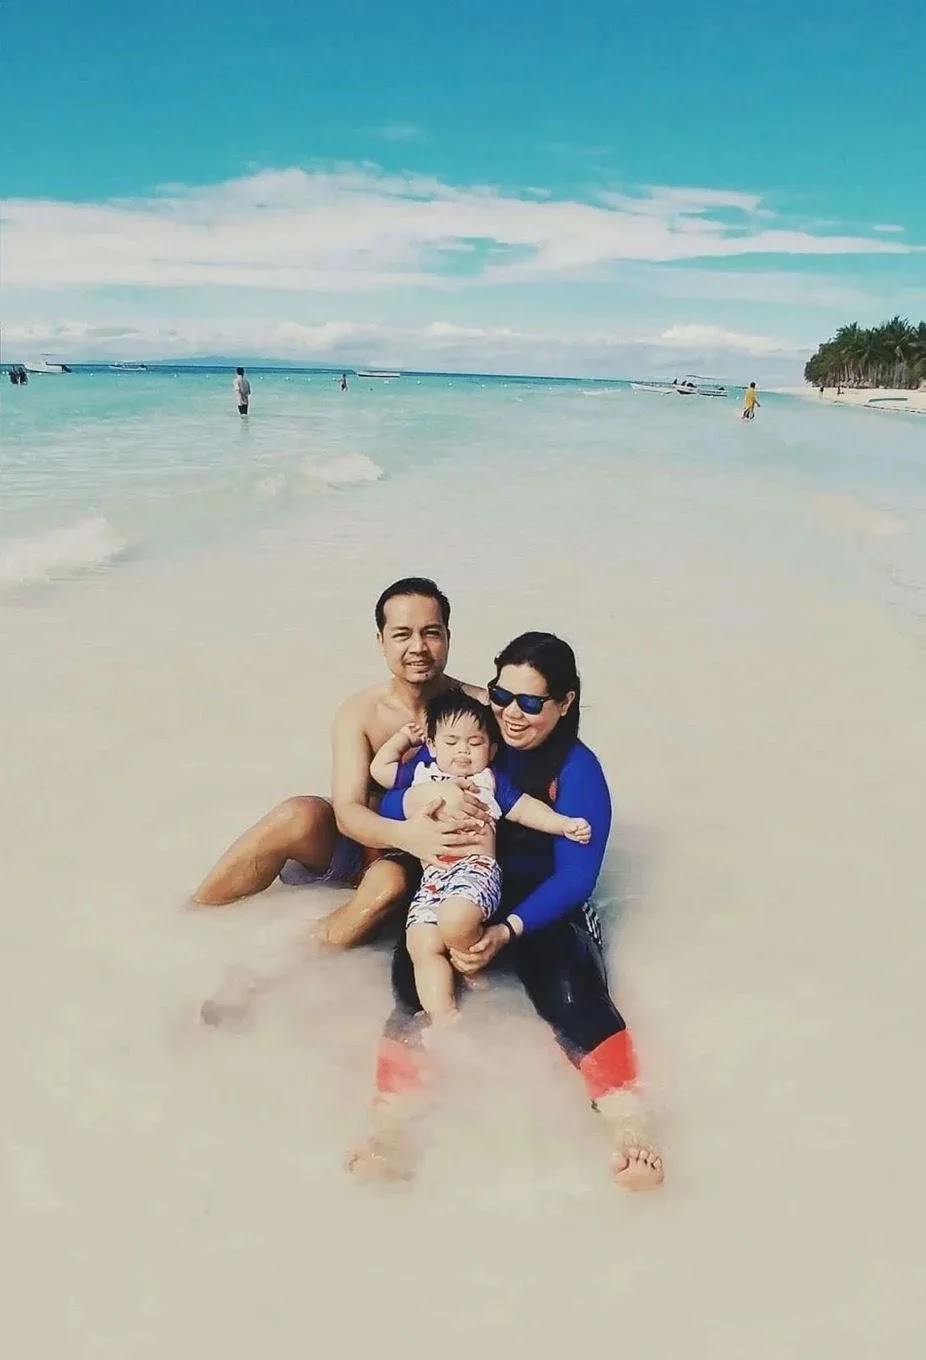 We took our Miguel for a swim at Dumaluan Beach Resort